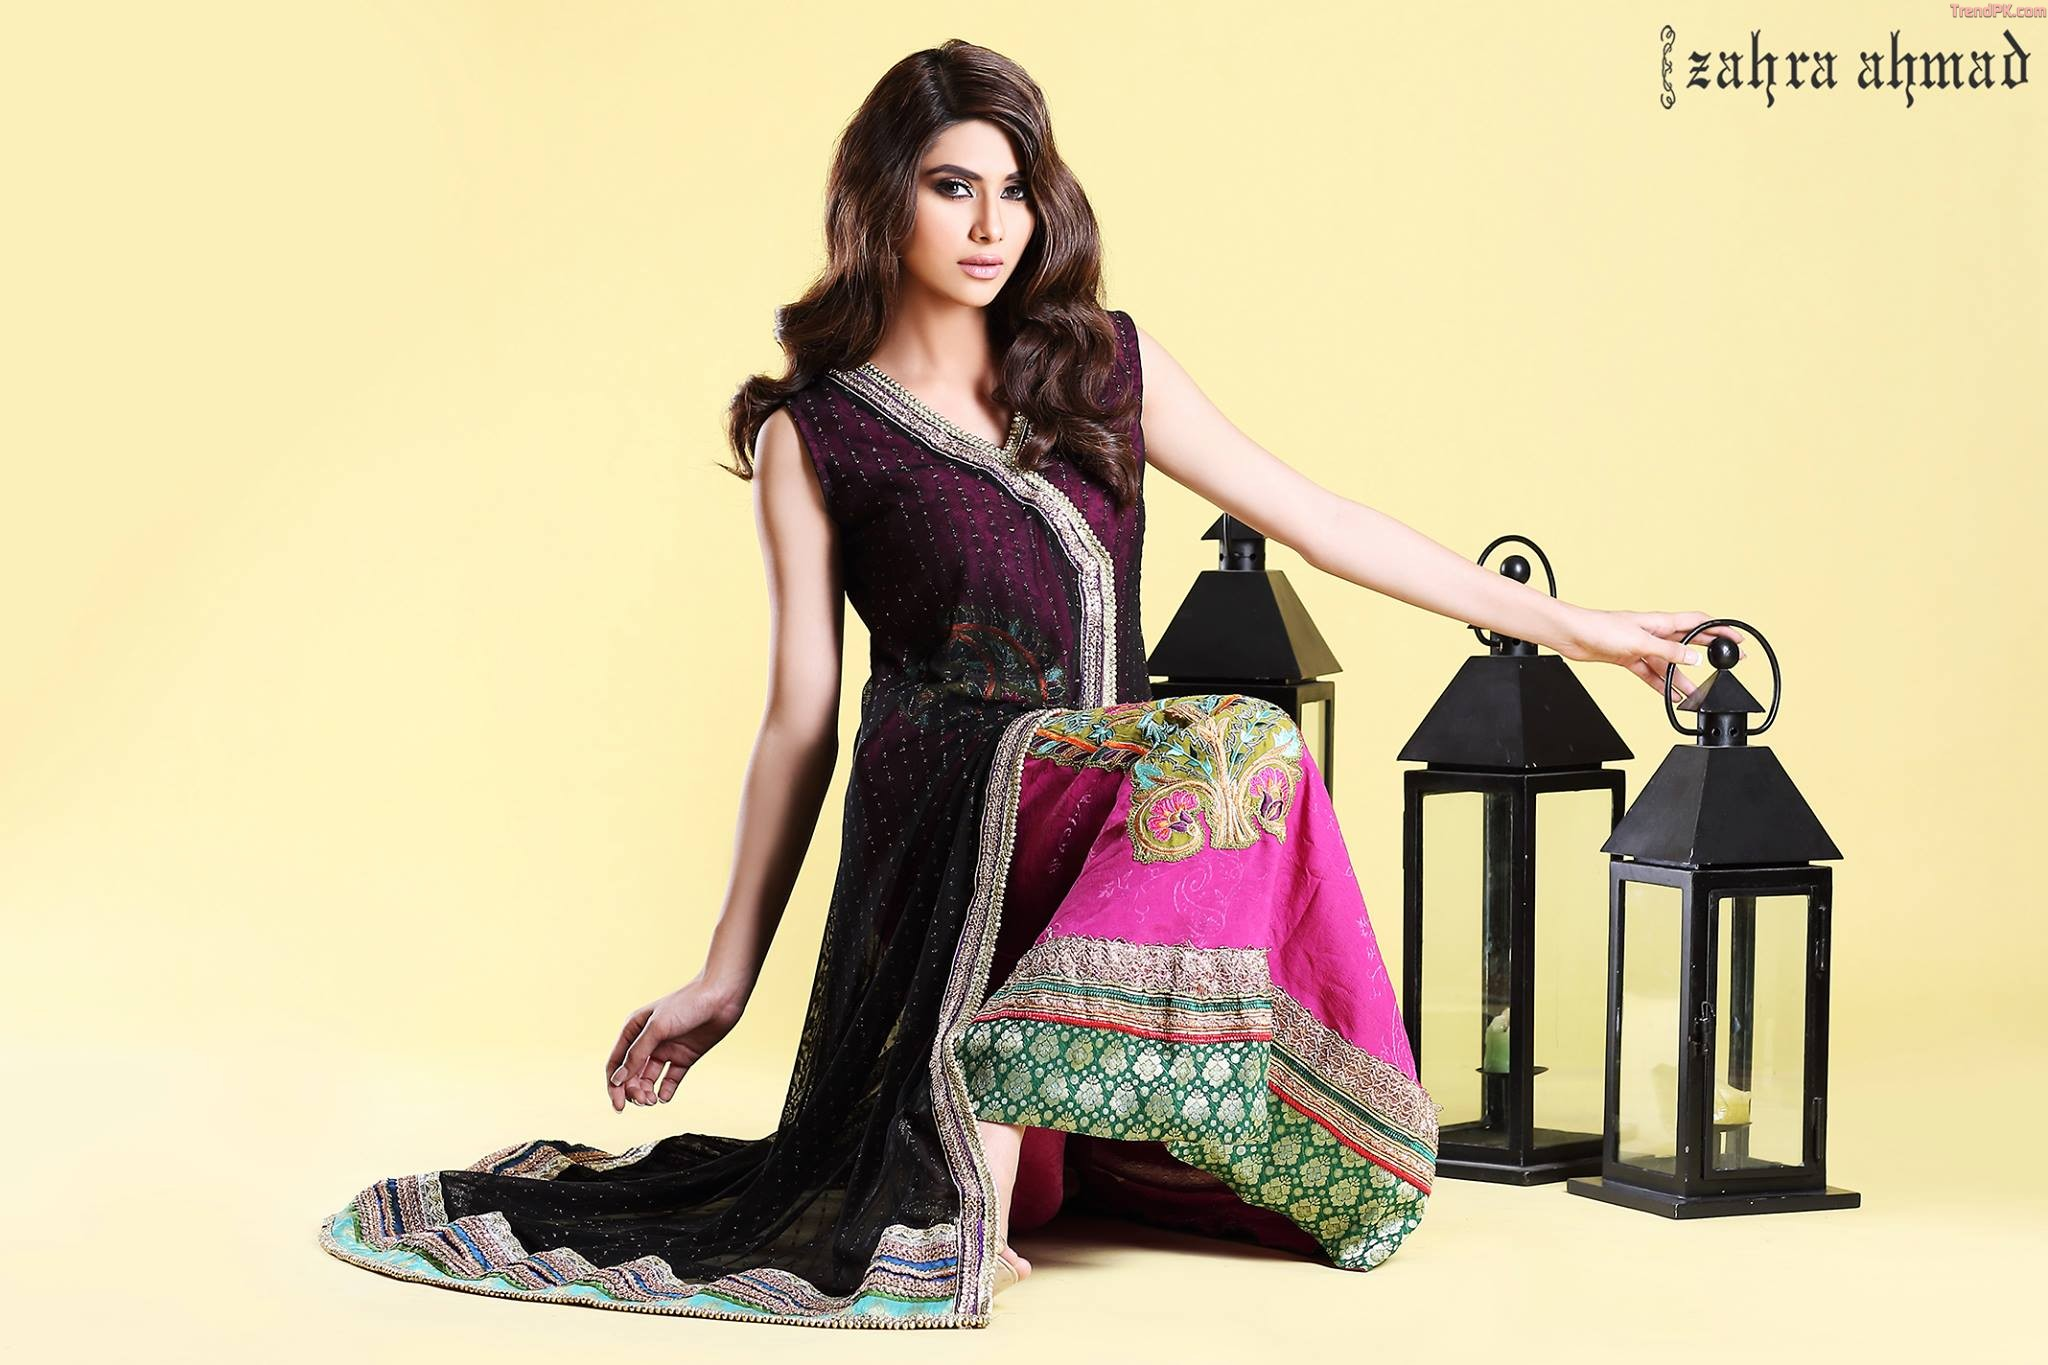 Zahra Ahmad Winter Festive Collection 2013-14 - Fall Collections d5a8a9465c74c